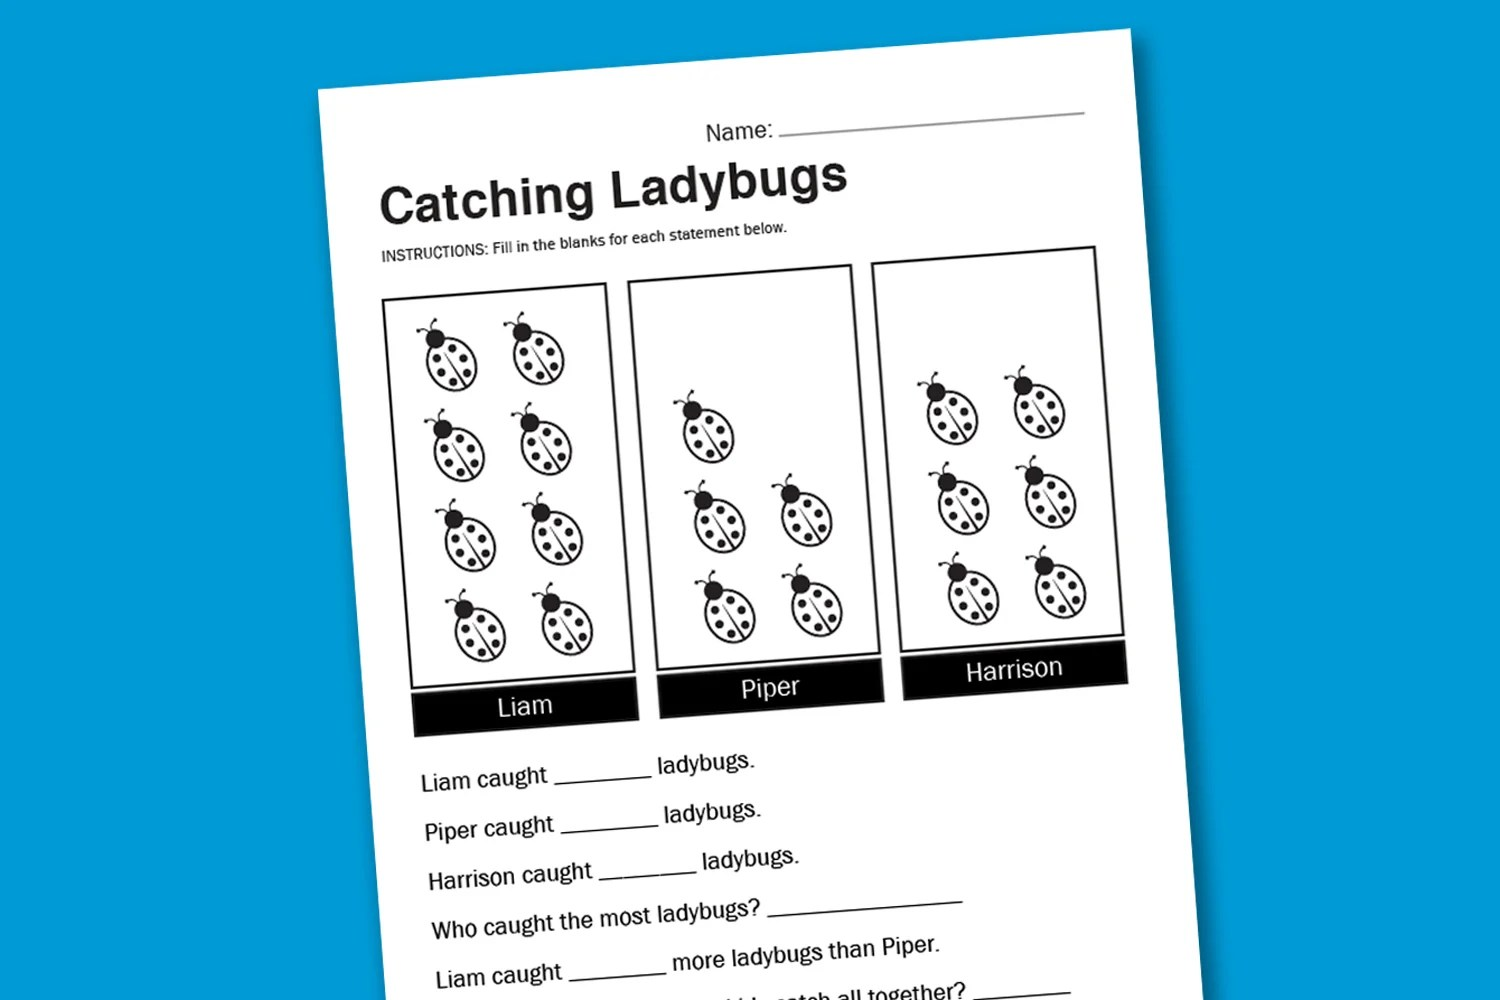 Worksheet Wednesday Catching Ladybugs